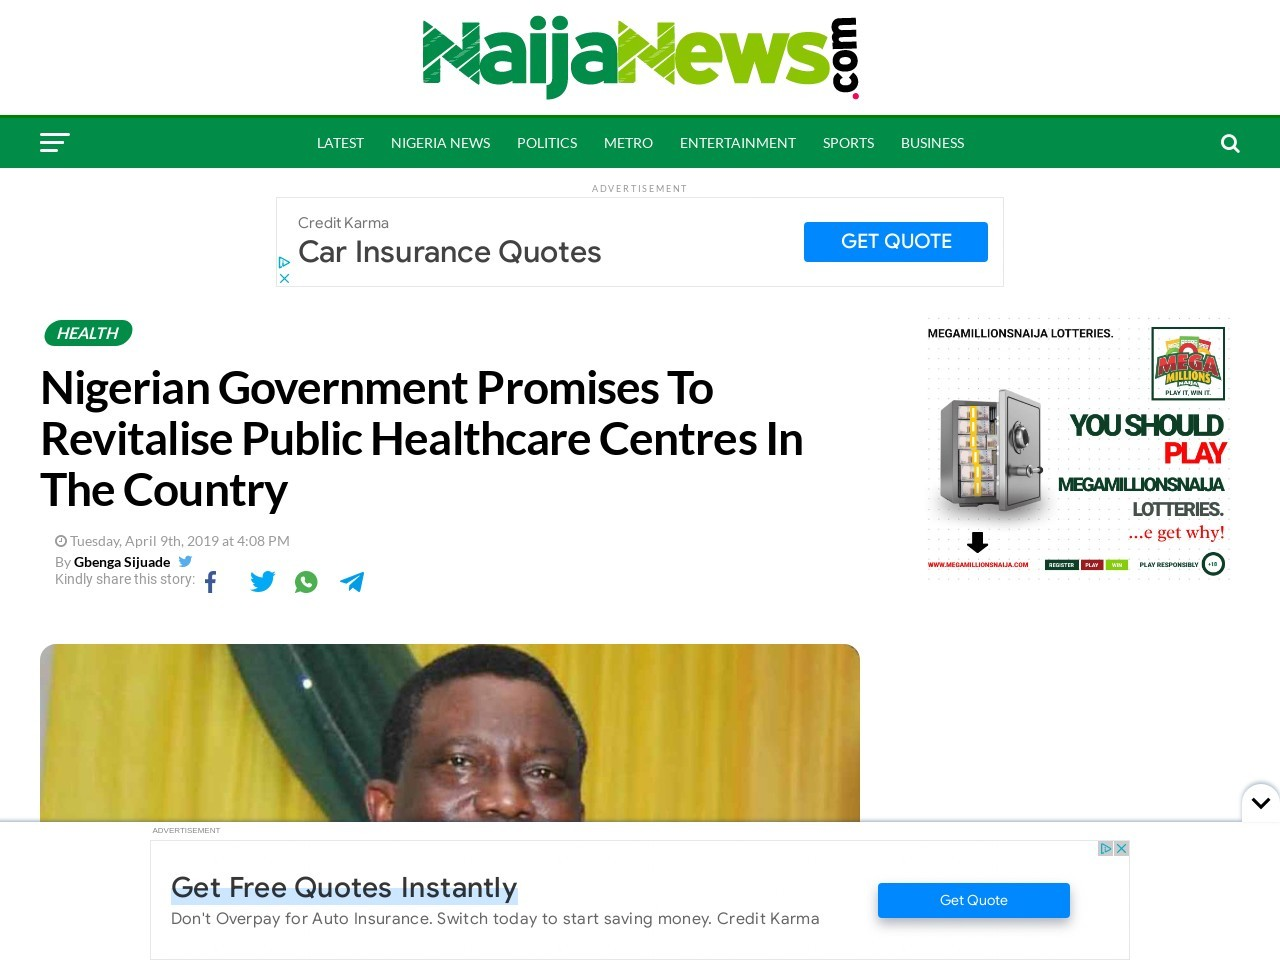 …To Revitalise Public Healthcare Centres In The…